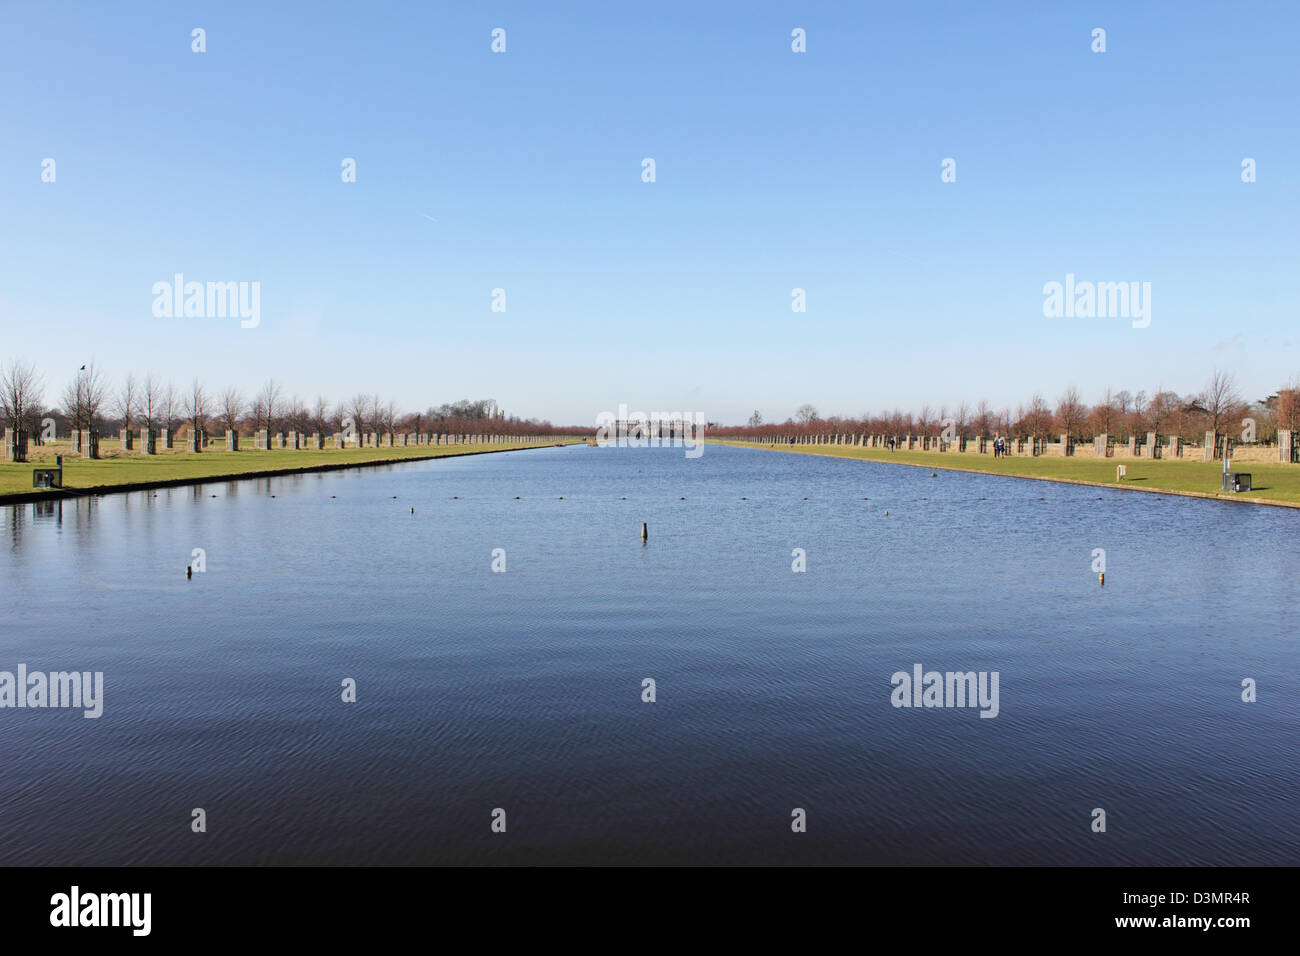 The Long Water Hampton Court Park Home England UK Stock